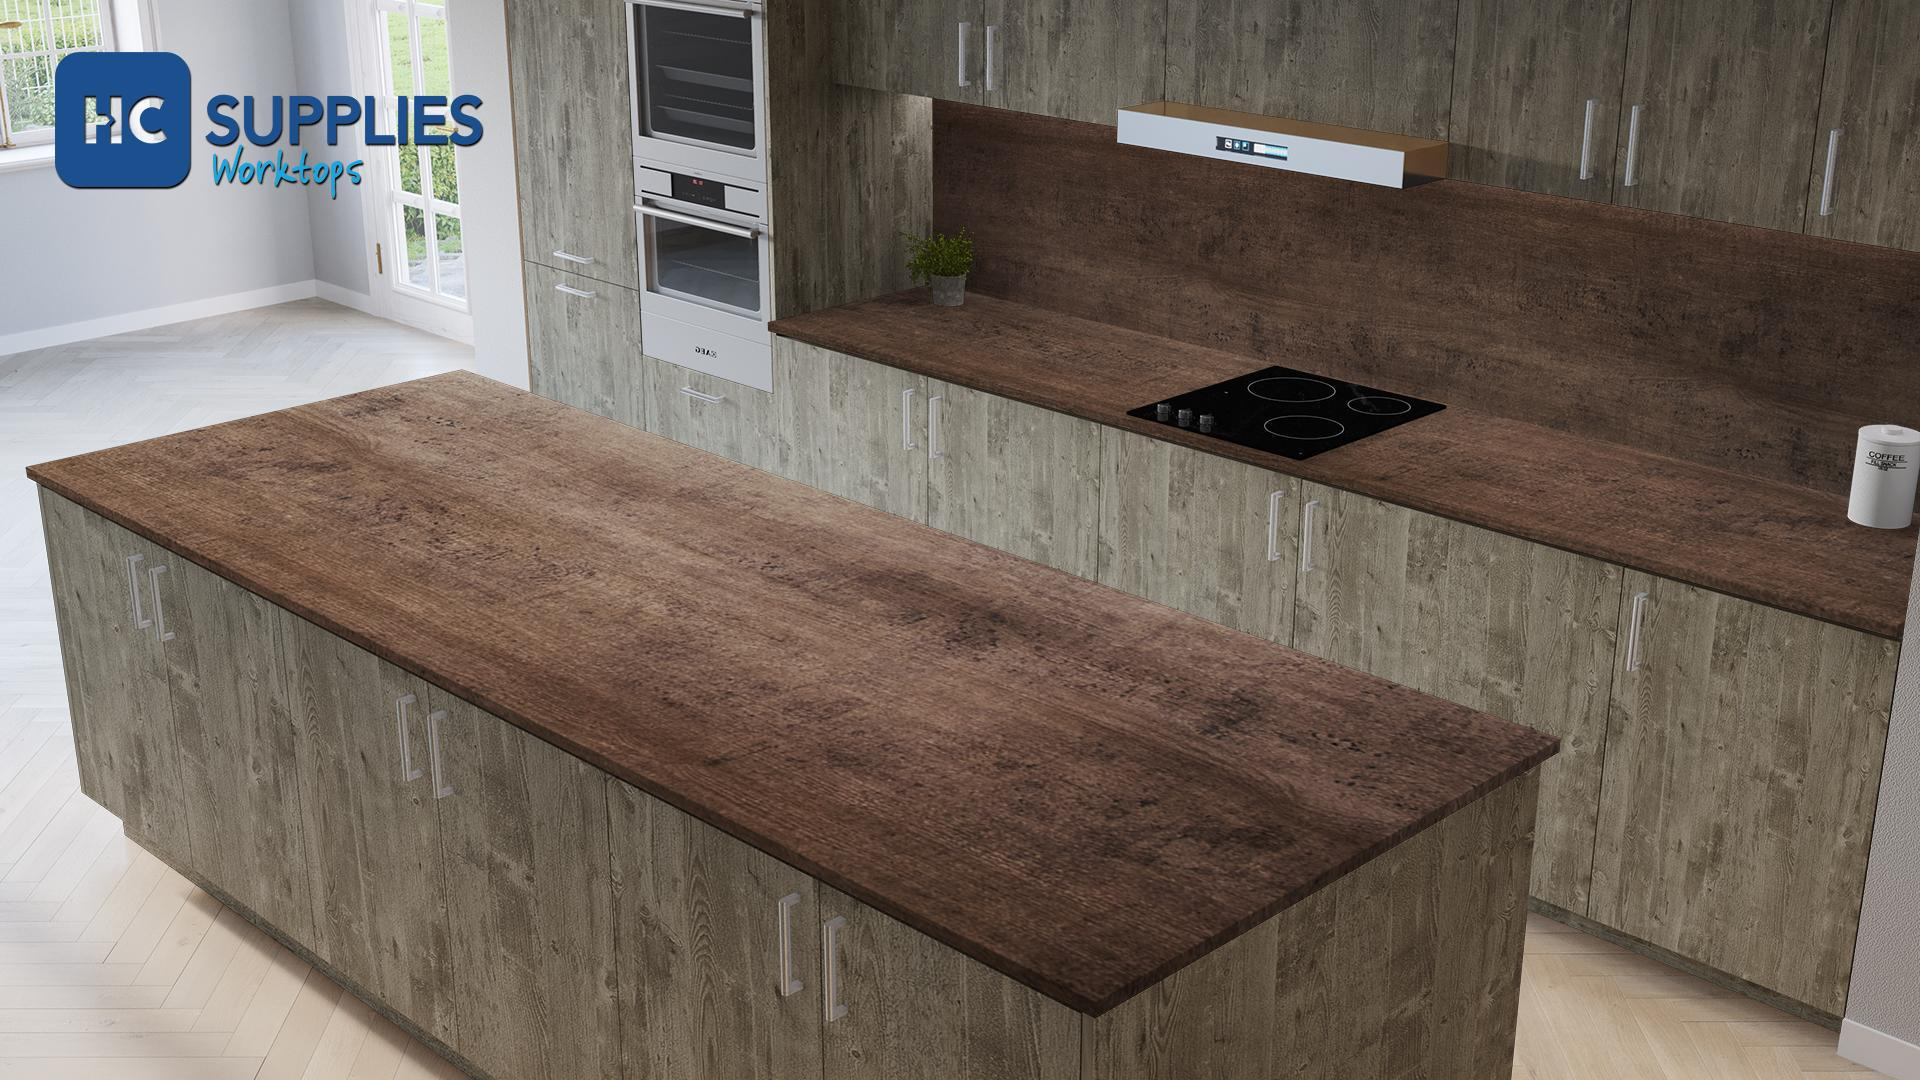 TopShape Sherwood 650mm Worktop